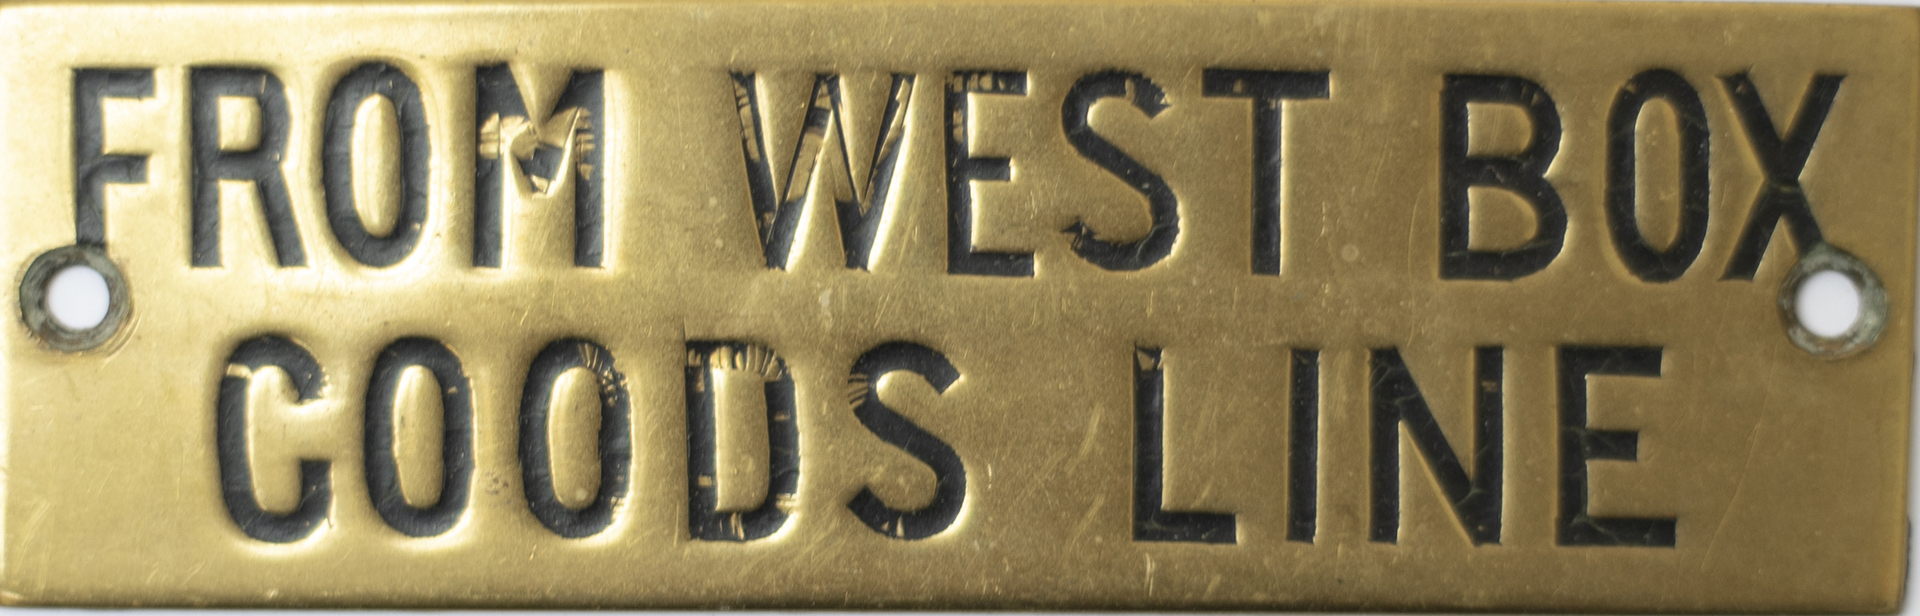 GWR hand engraved brass shelf plate FROM WEST BOX GOODS LINE. In very good condition with original